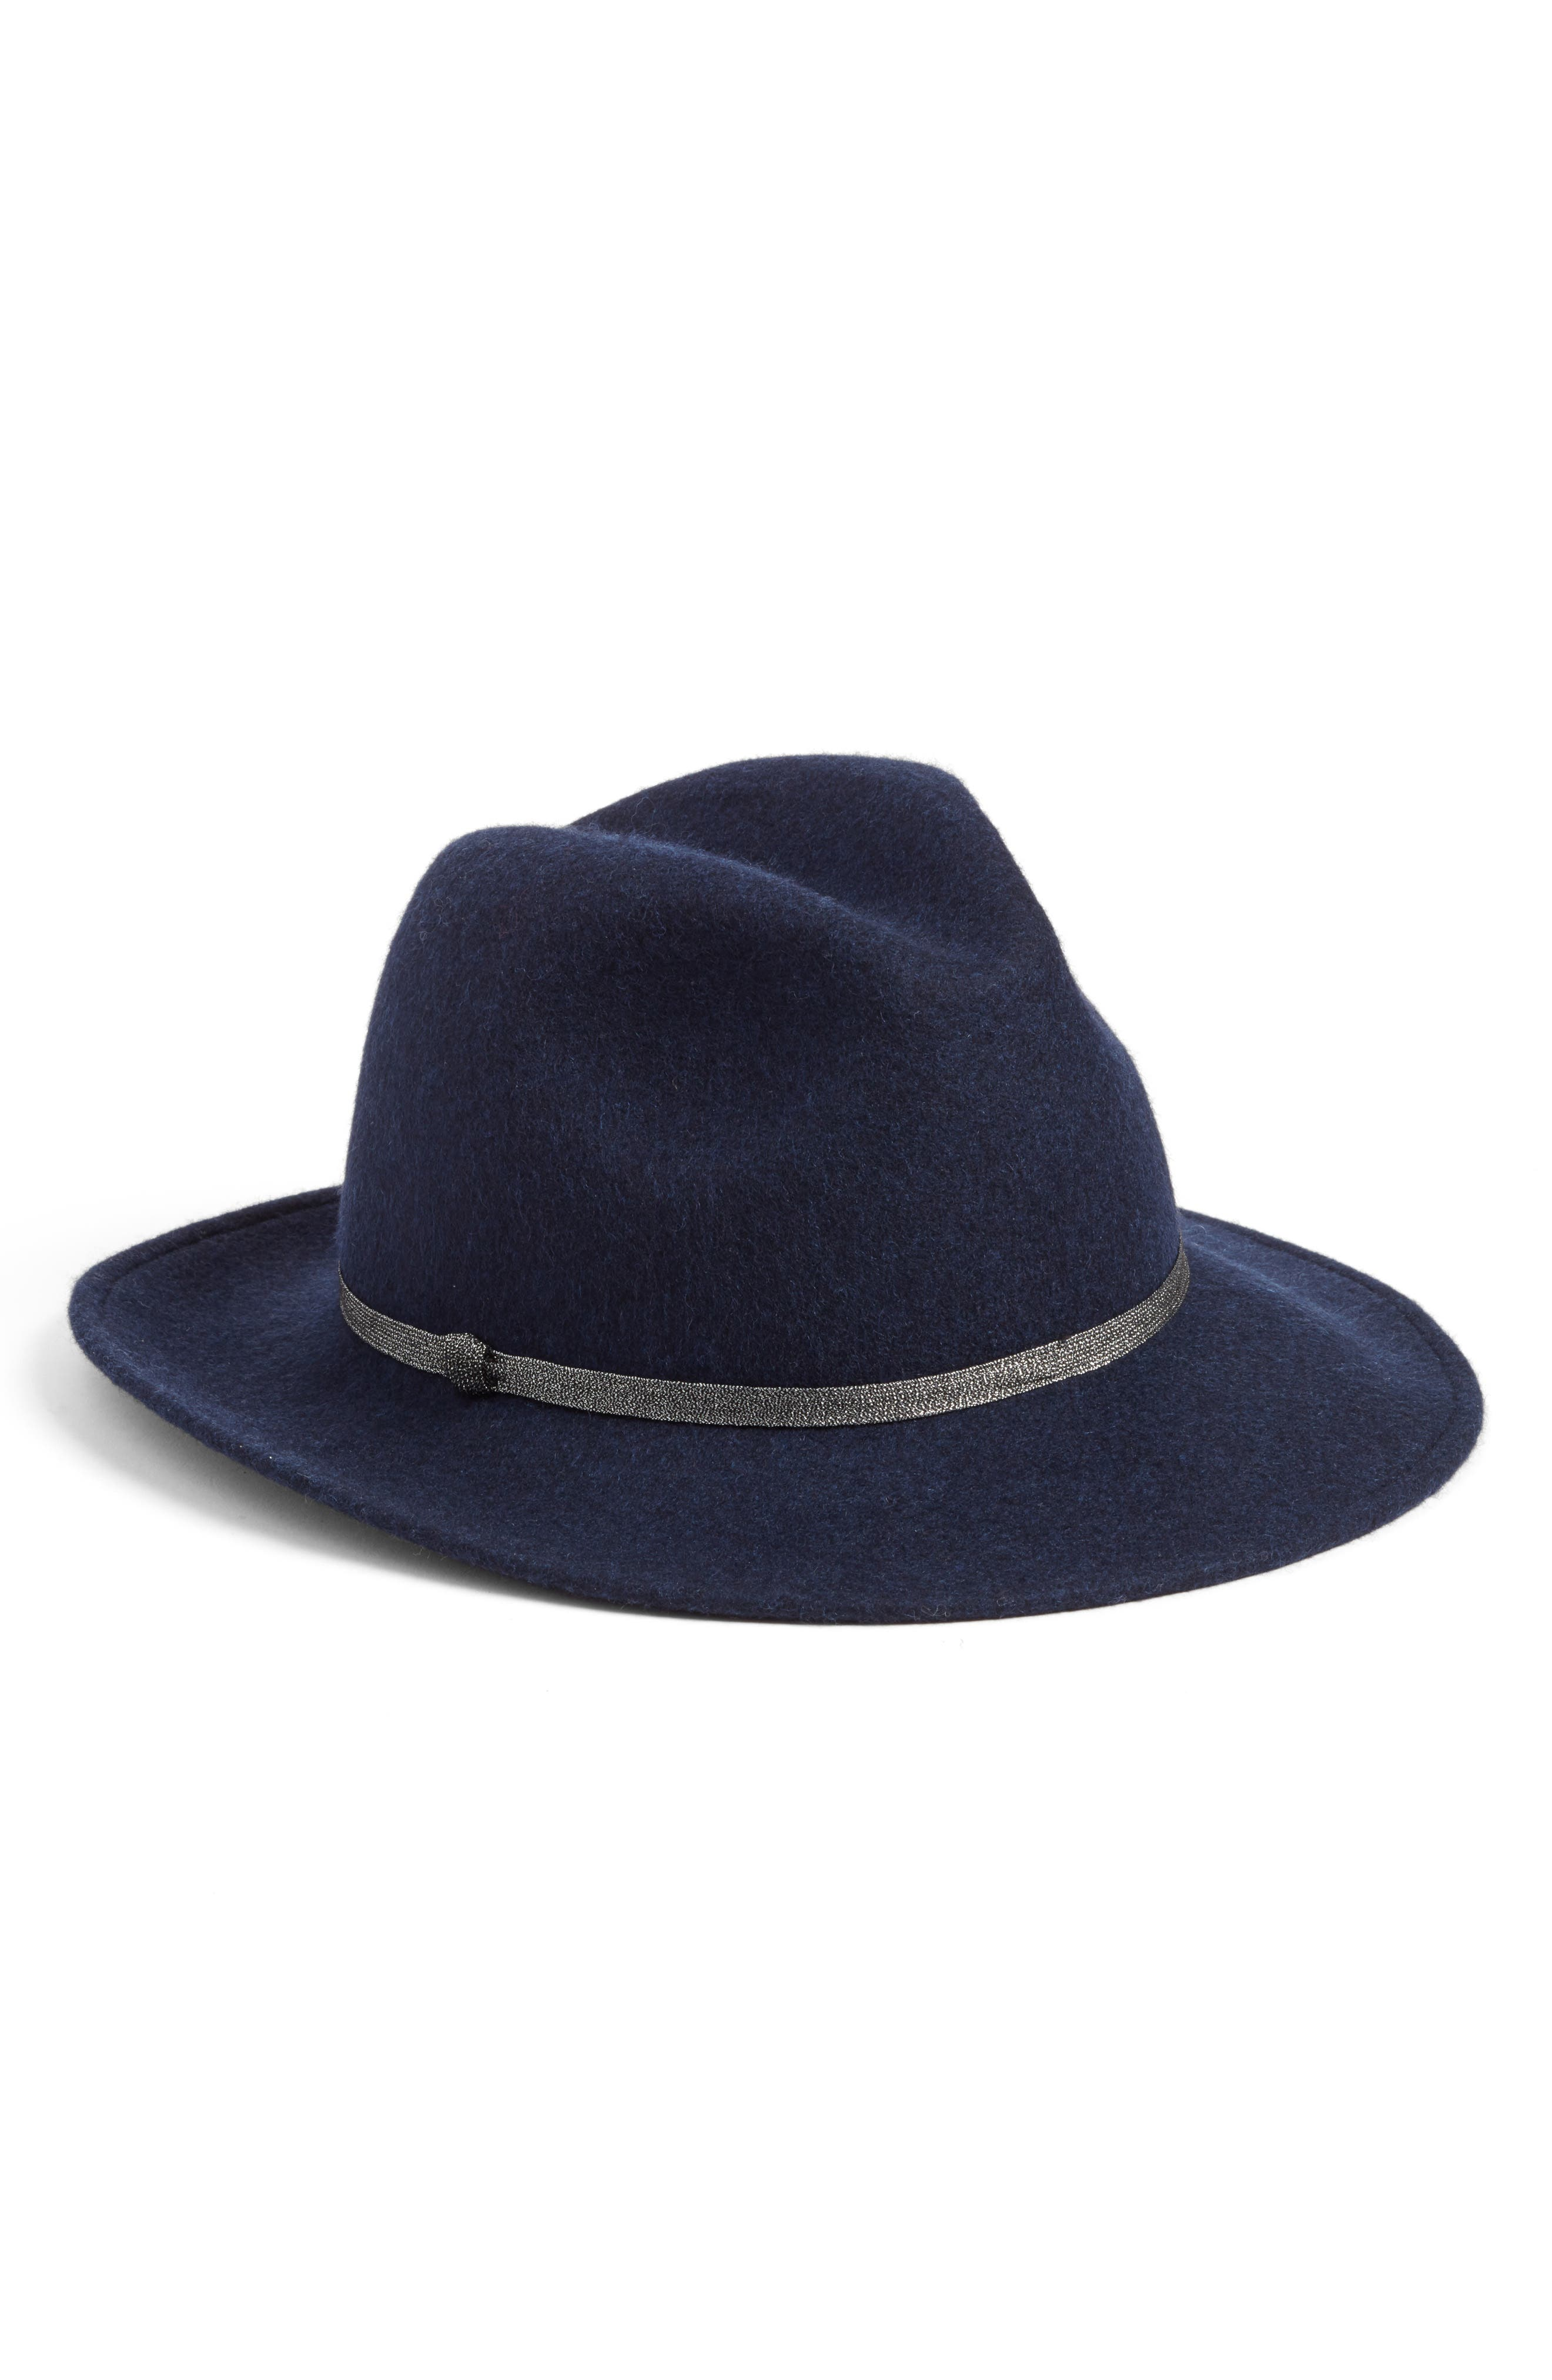 Metallic Band Wool Felt Panama Hat,                         Main,                         color, Navy Heather